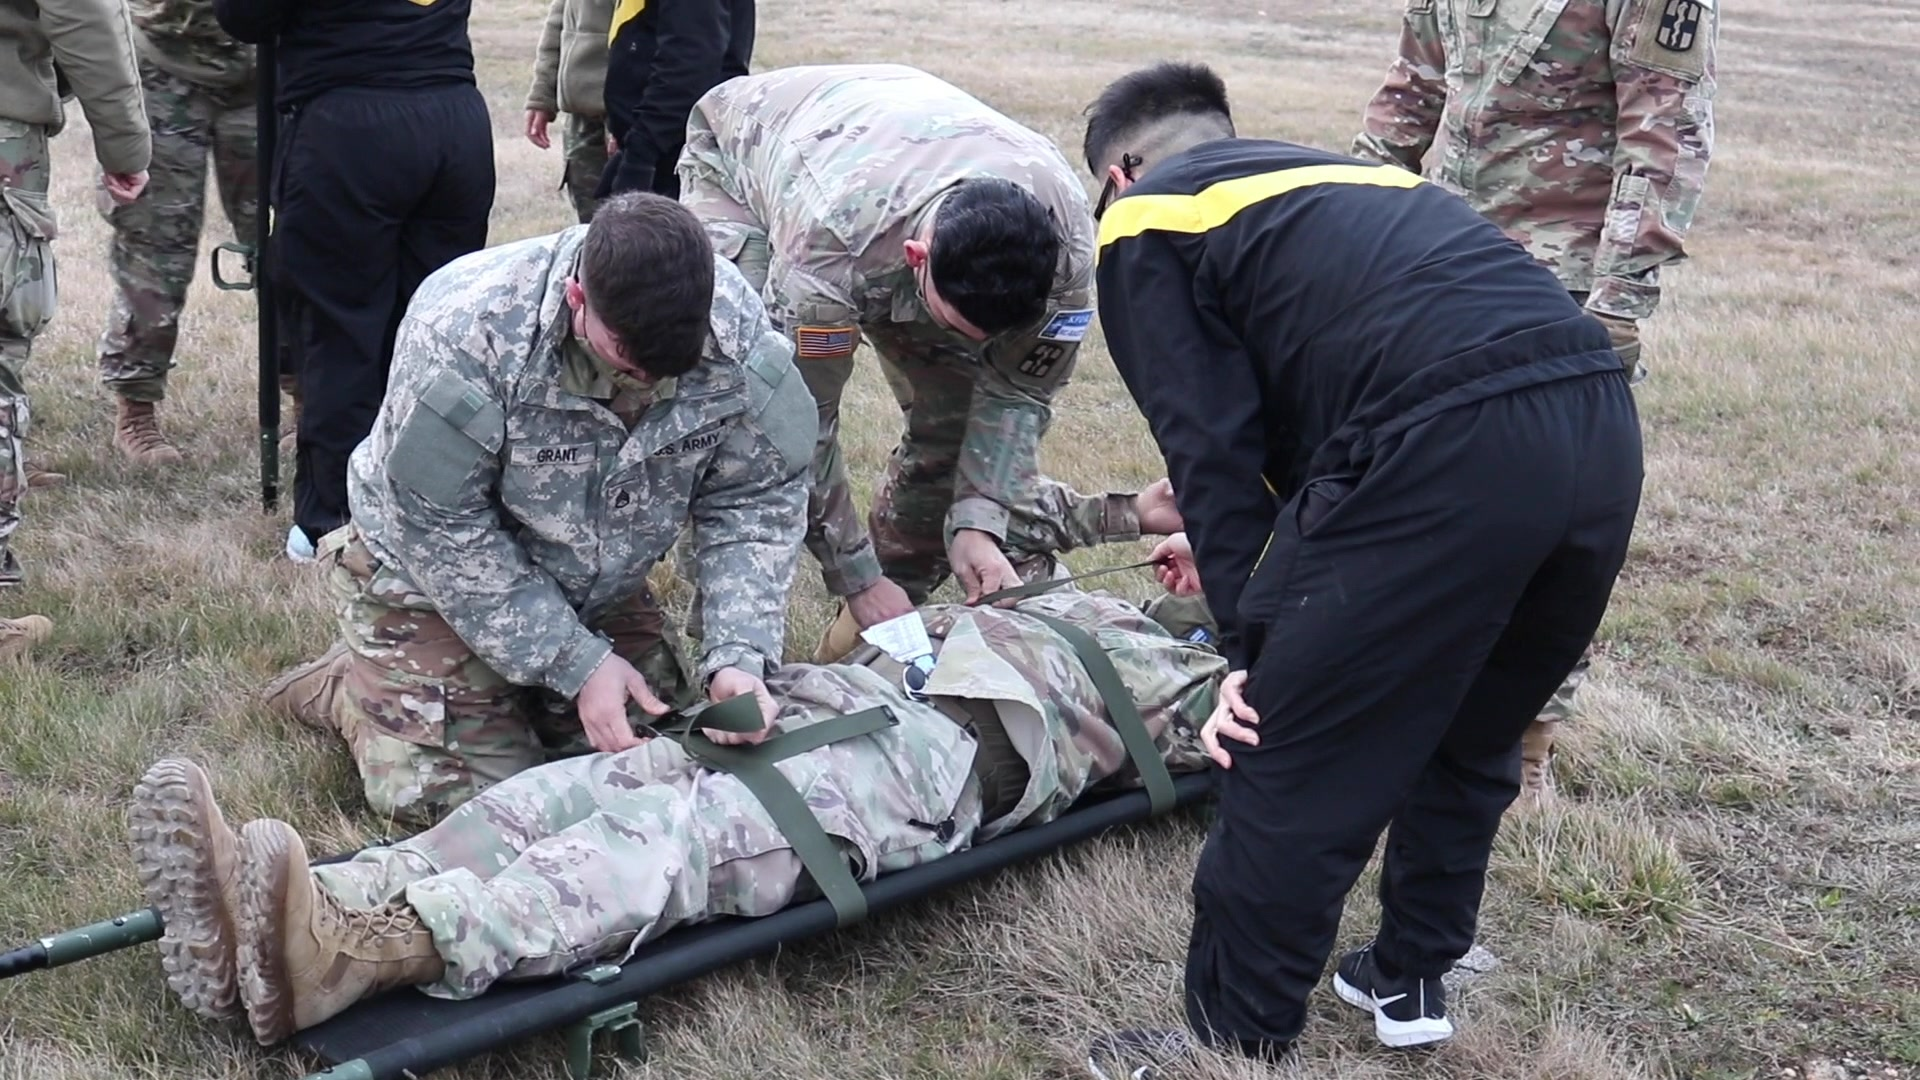 U.S. Army Soldiers with the 566th Medical Company (Area Support) out of Fort Hood Texas, train on aviation medical evacuation procedures with the 1st Battalion, 168th General Support Aviation Battalion, Washington Army National Guard. The training covered a variety of MEDEVAC methods, including litter carries and hoist lifts. (U.S. Army National Guard video by Sgt. Jonathan Perdelwitz)